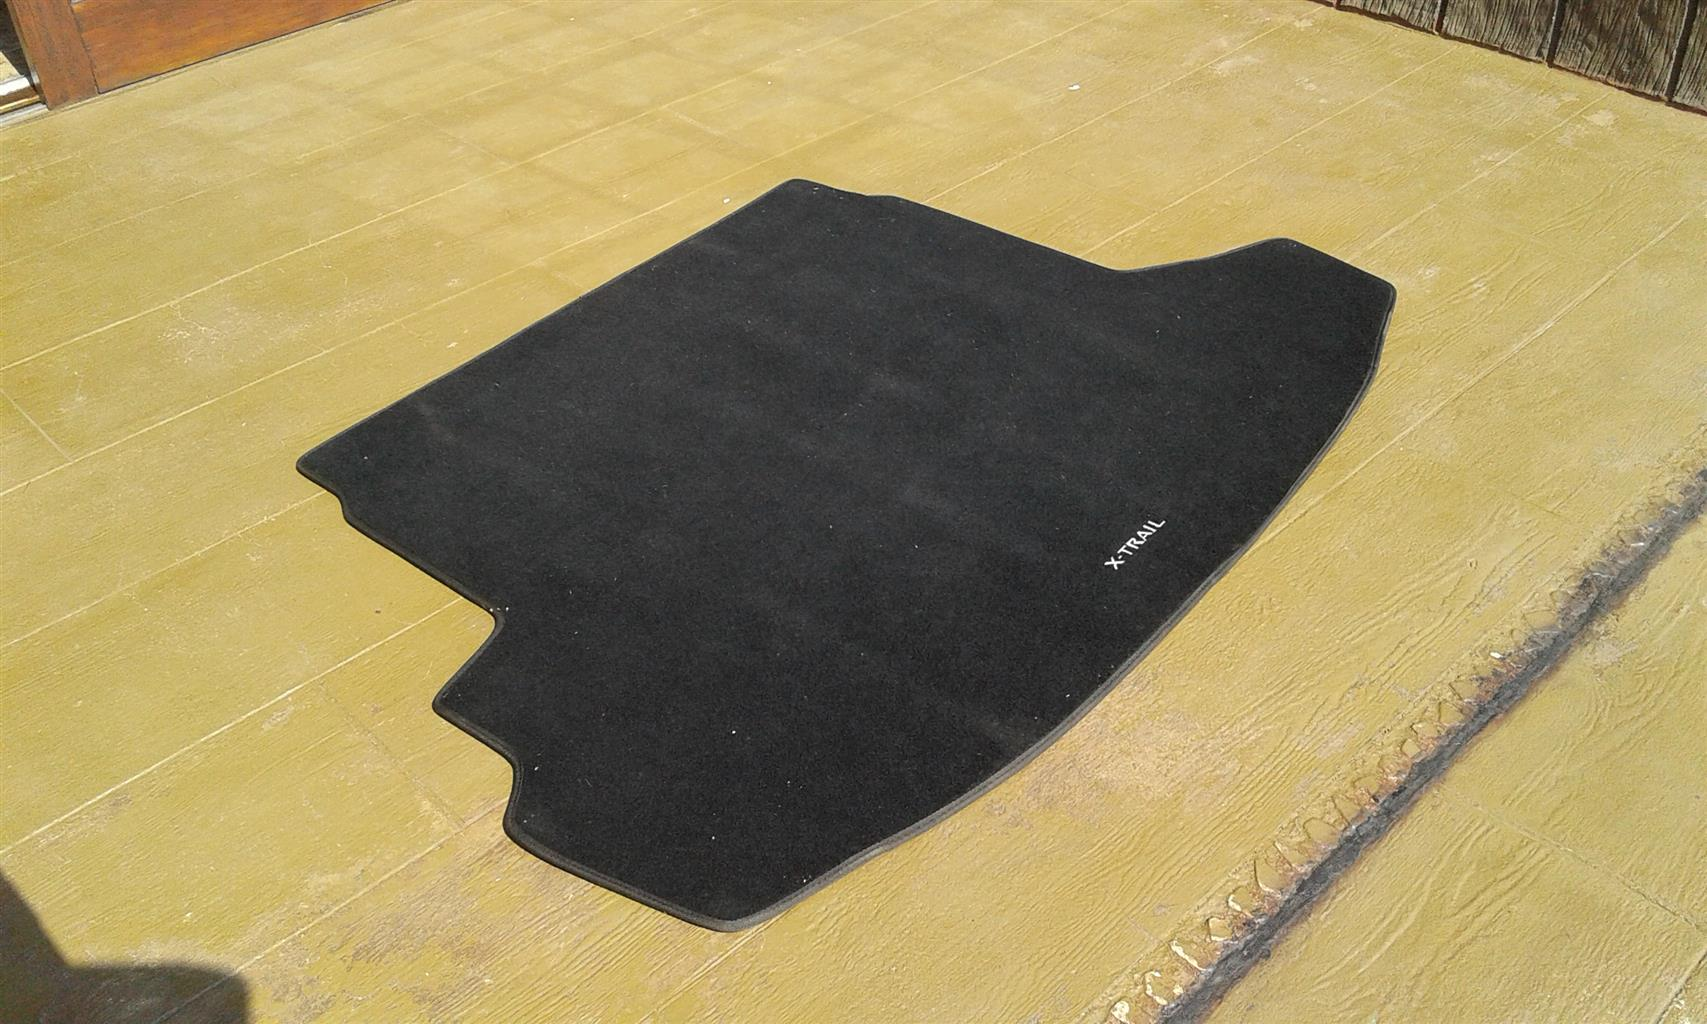 Nissan X-trail (2007-2013) Boot Floor Mat (material, original)